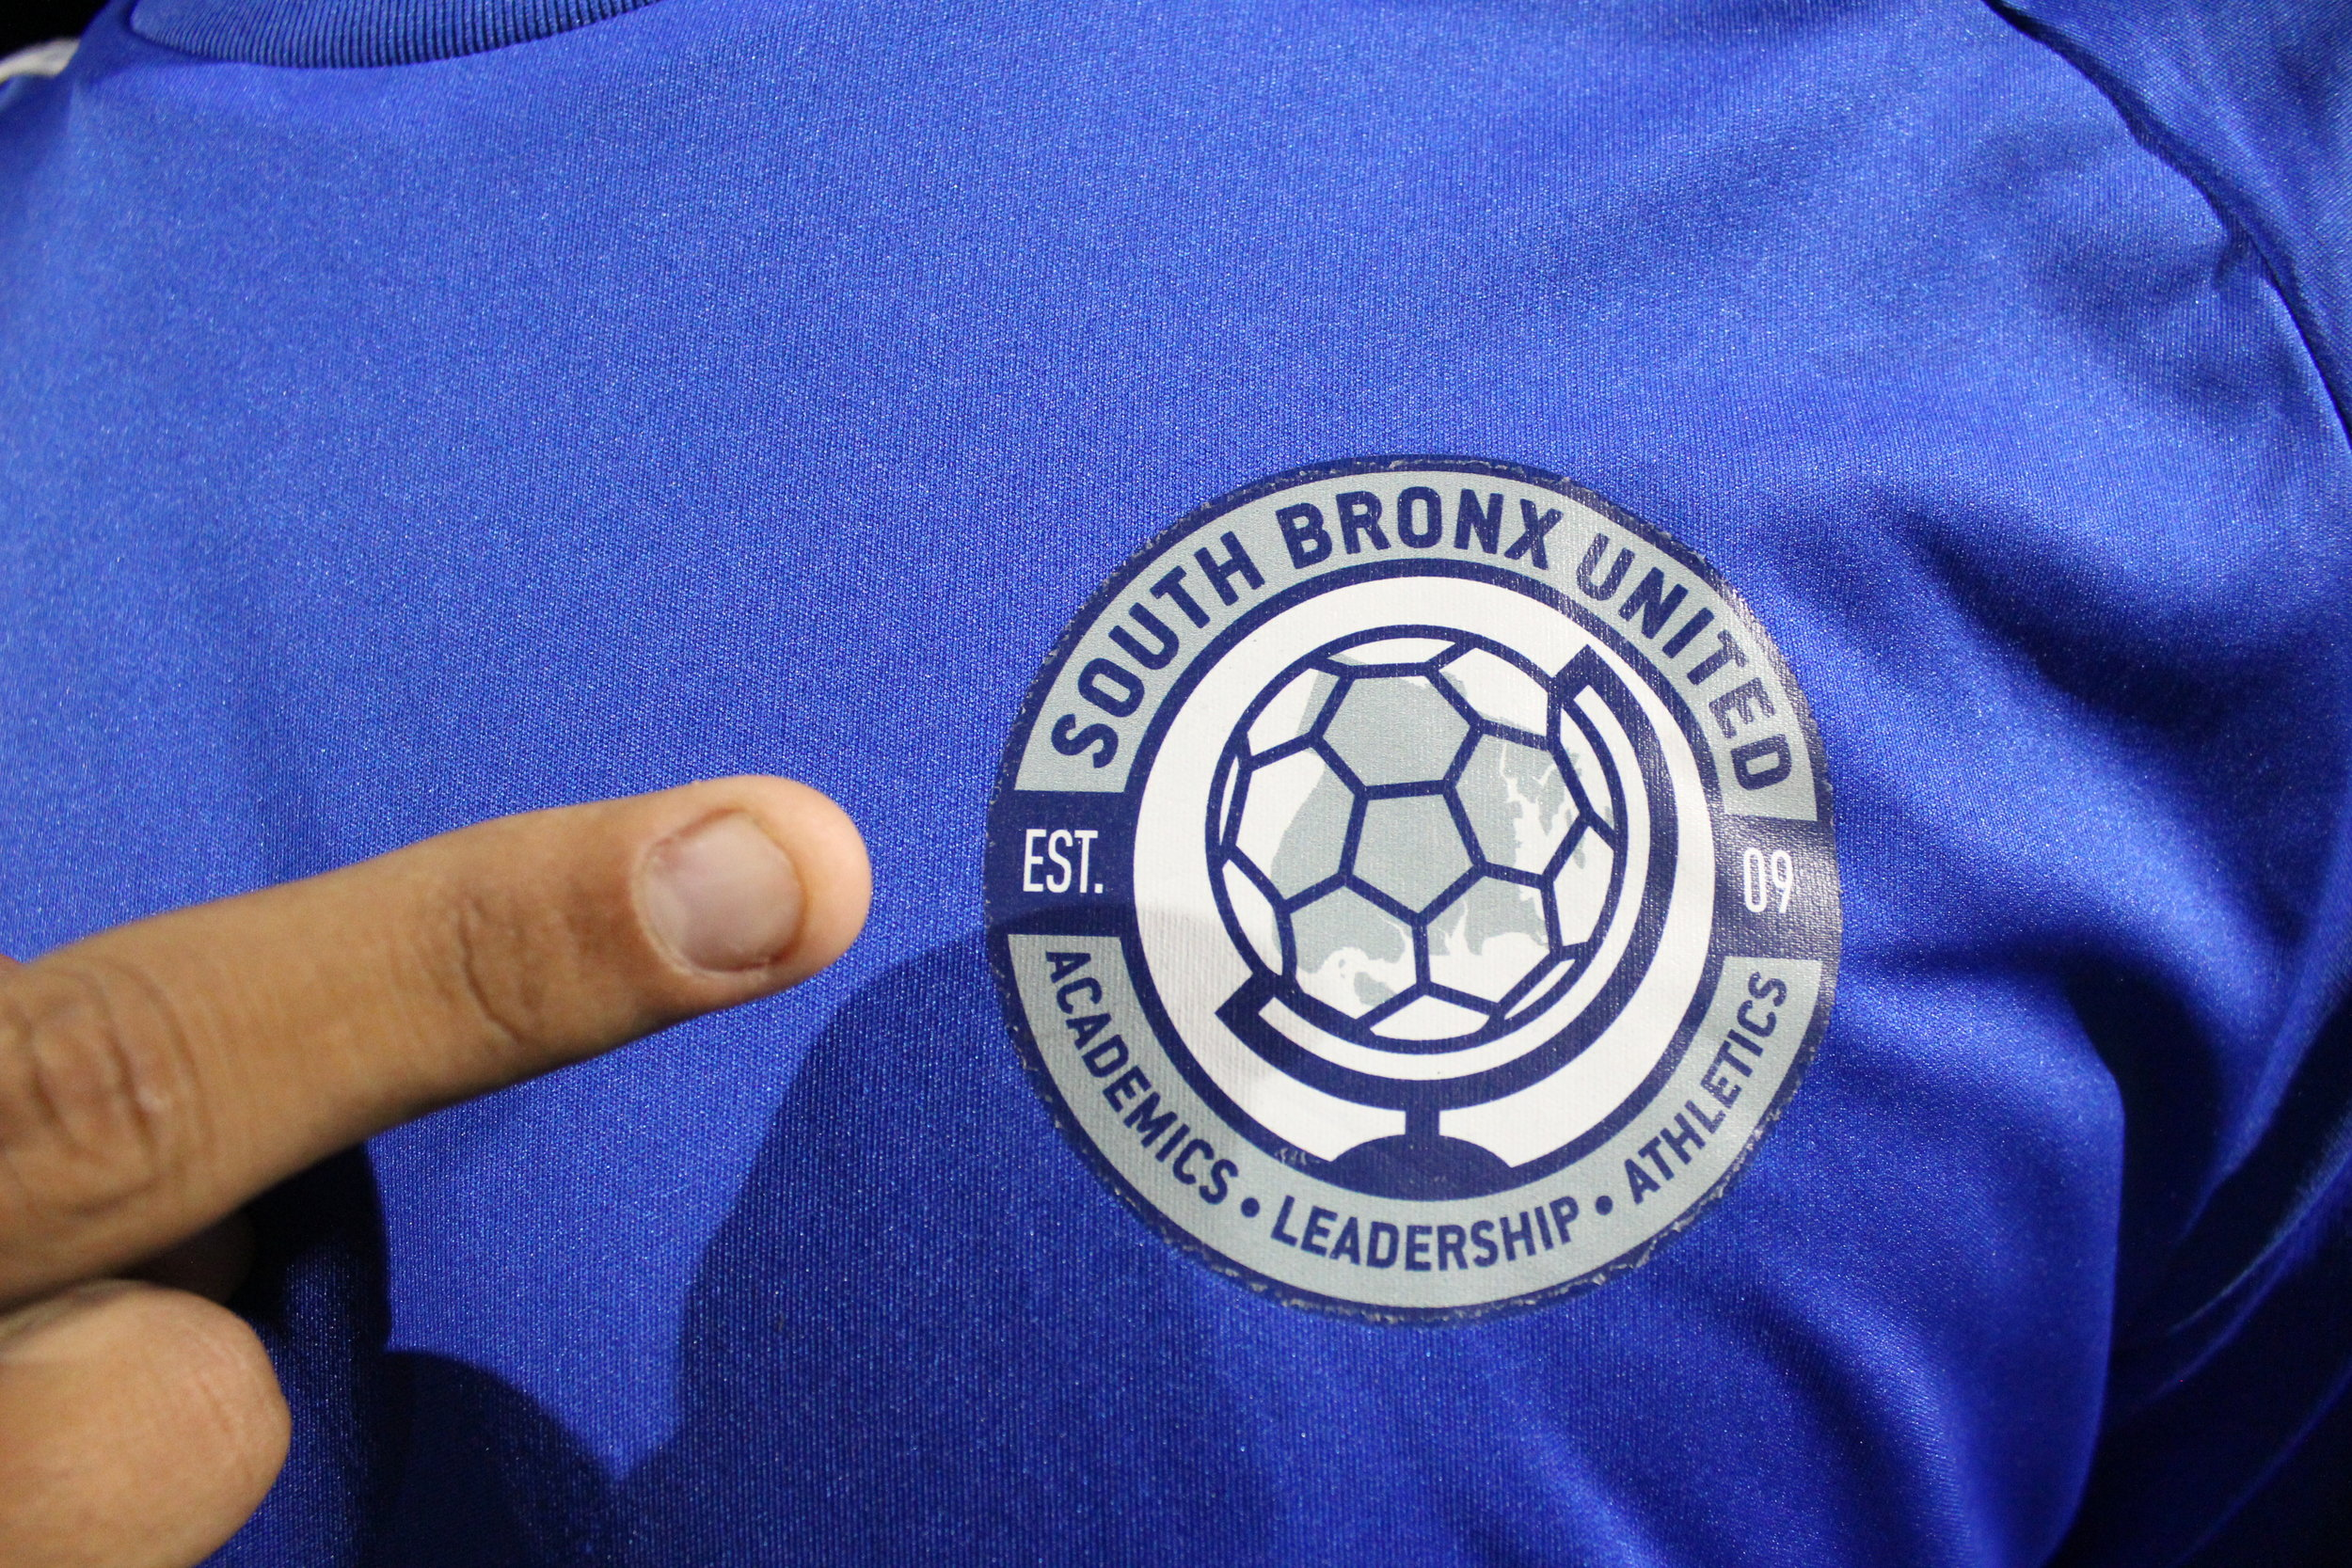 The motto found in the crest of the sapphire blue uniforms worn by the academy players exemplifies the chief objectives of the organization.Kervy Robles for After the Final Whistle.